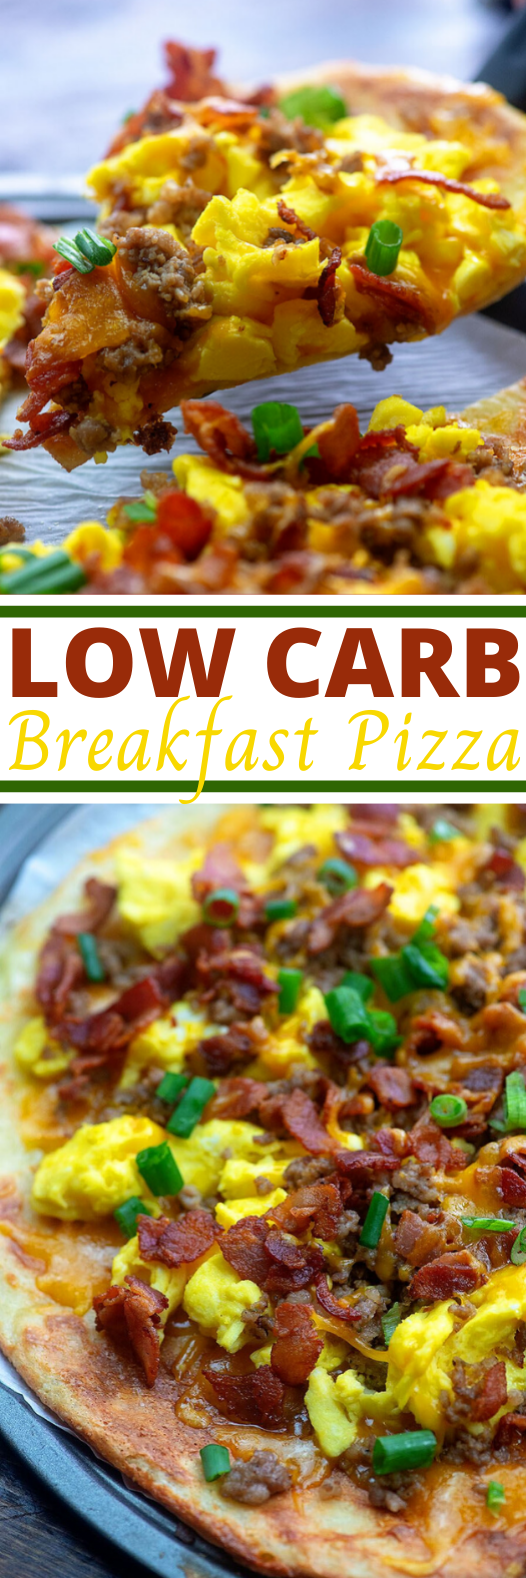 Meat Lovers Breakfast Pizza #keto #glutenfree #easy #lowcarb #pizza